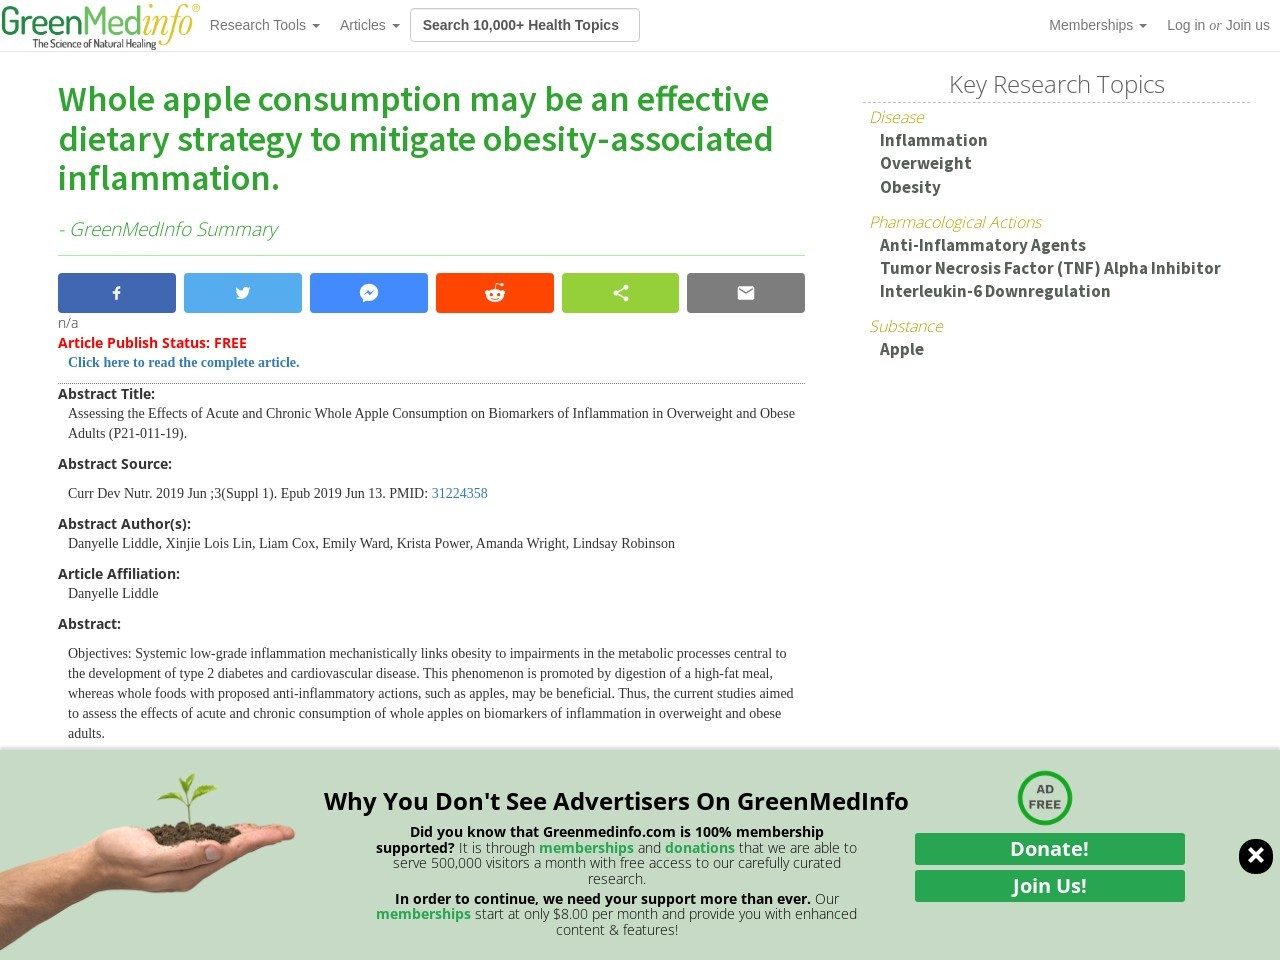 Whole apple consumption may be an effective dietary strategy to mitigate obesity-associated inflammation.